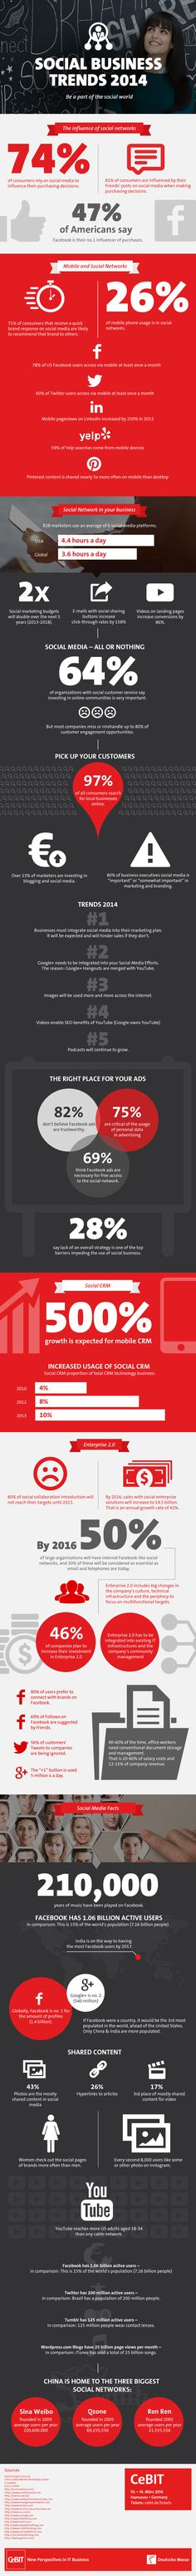 Infographic: Social media and mobile are influencing purchasing decisions